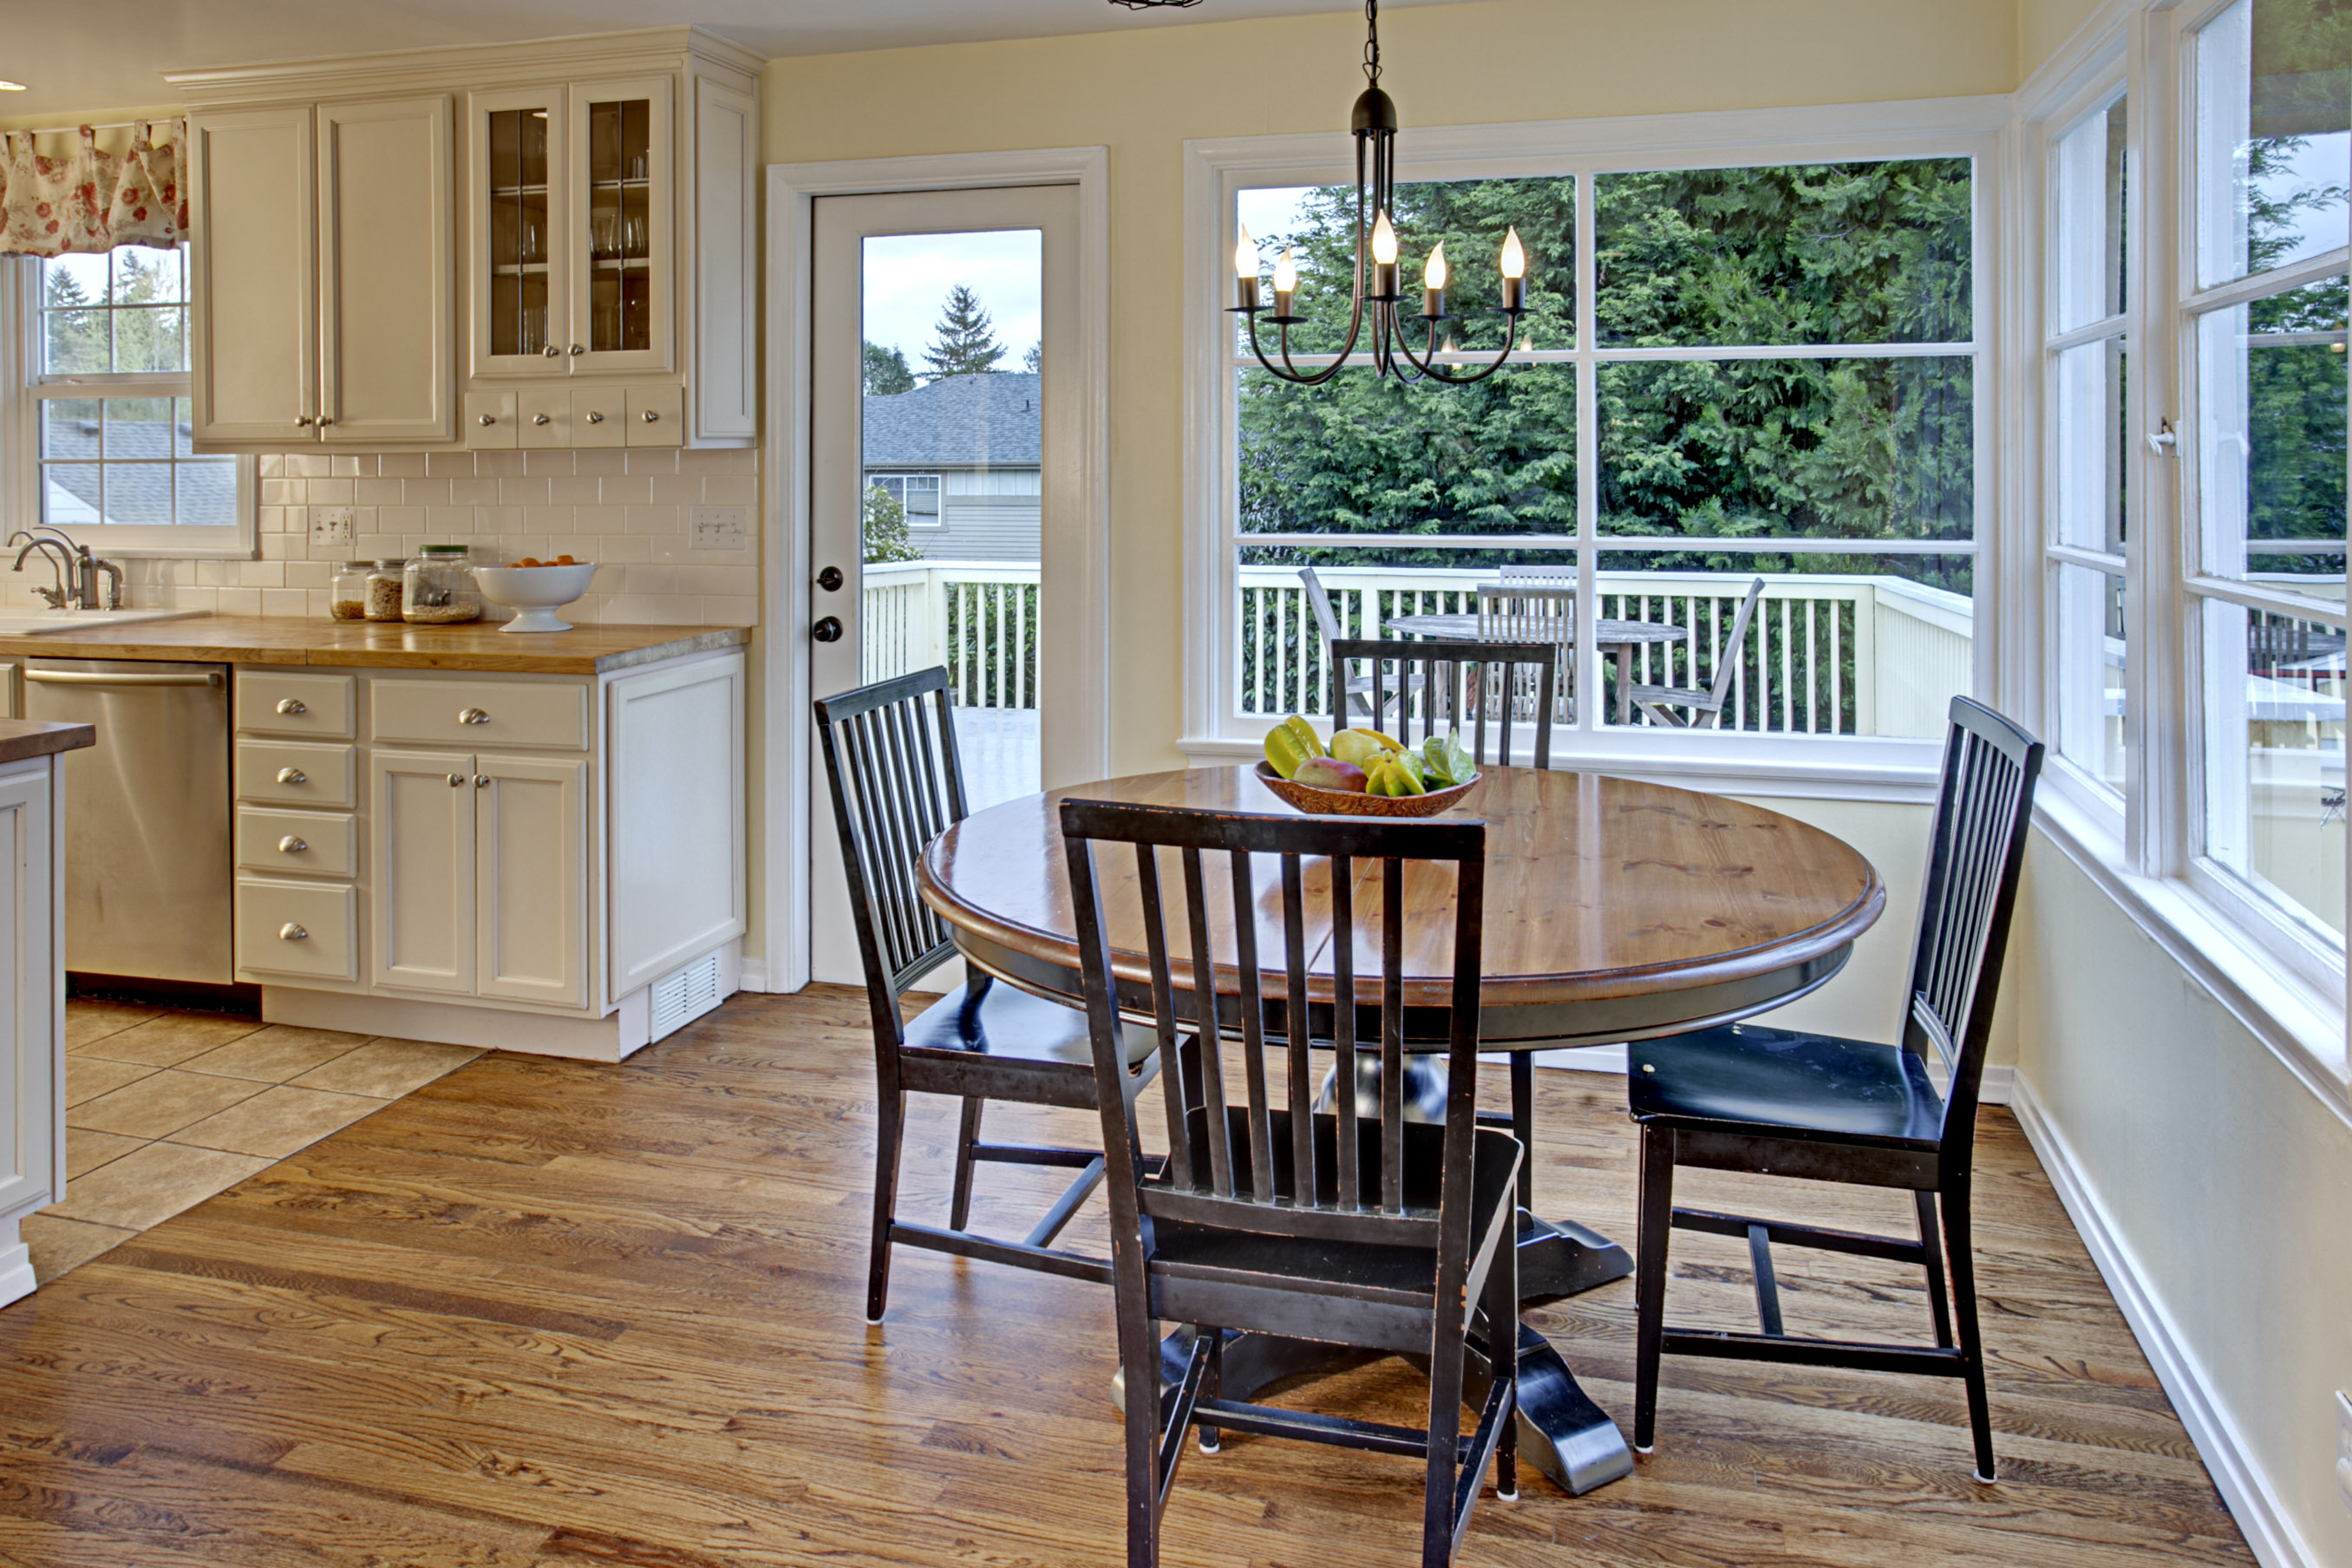 Cape cod kitchen in seattle hooked on houses for Cape cod kitchen design ideas